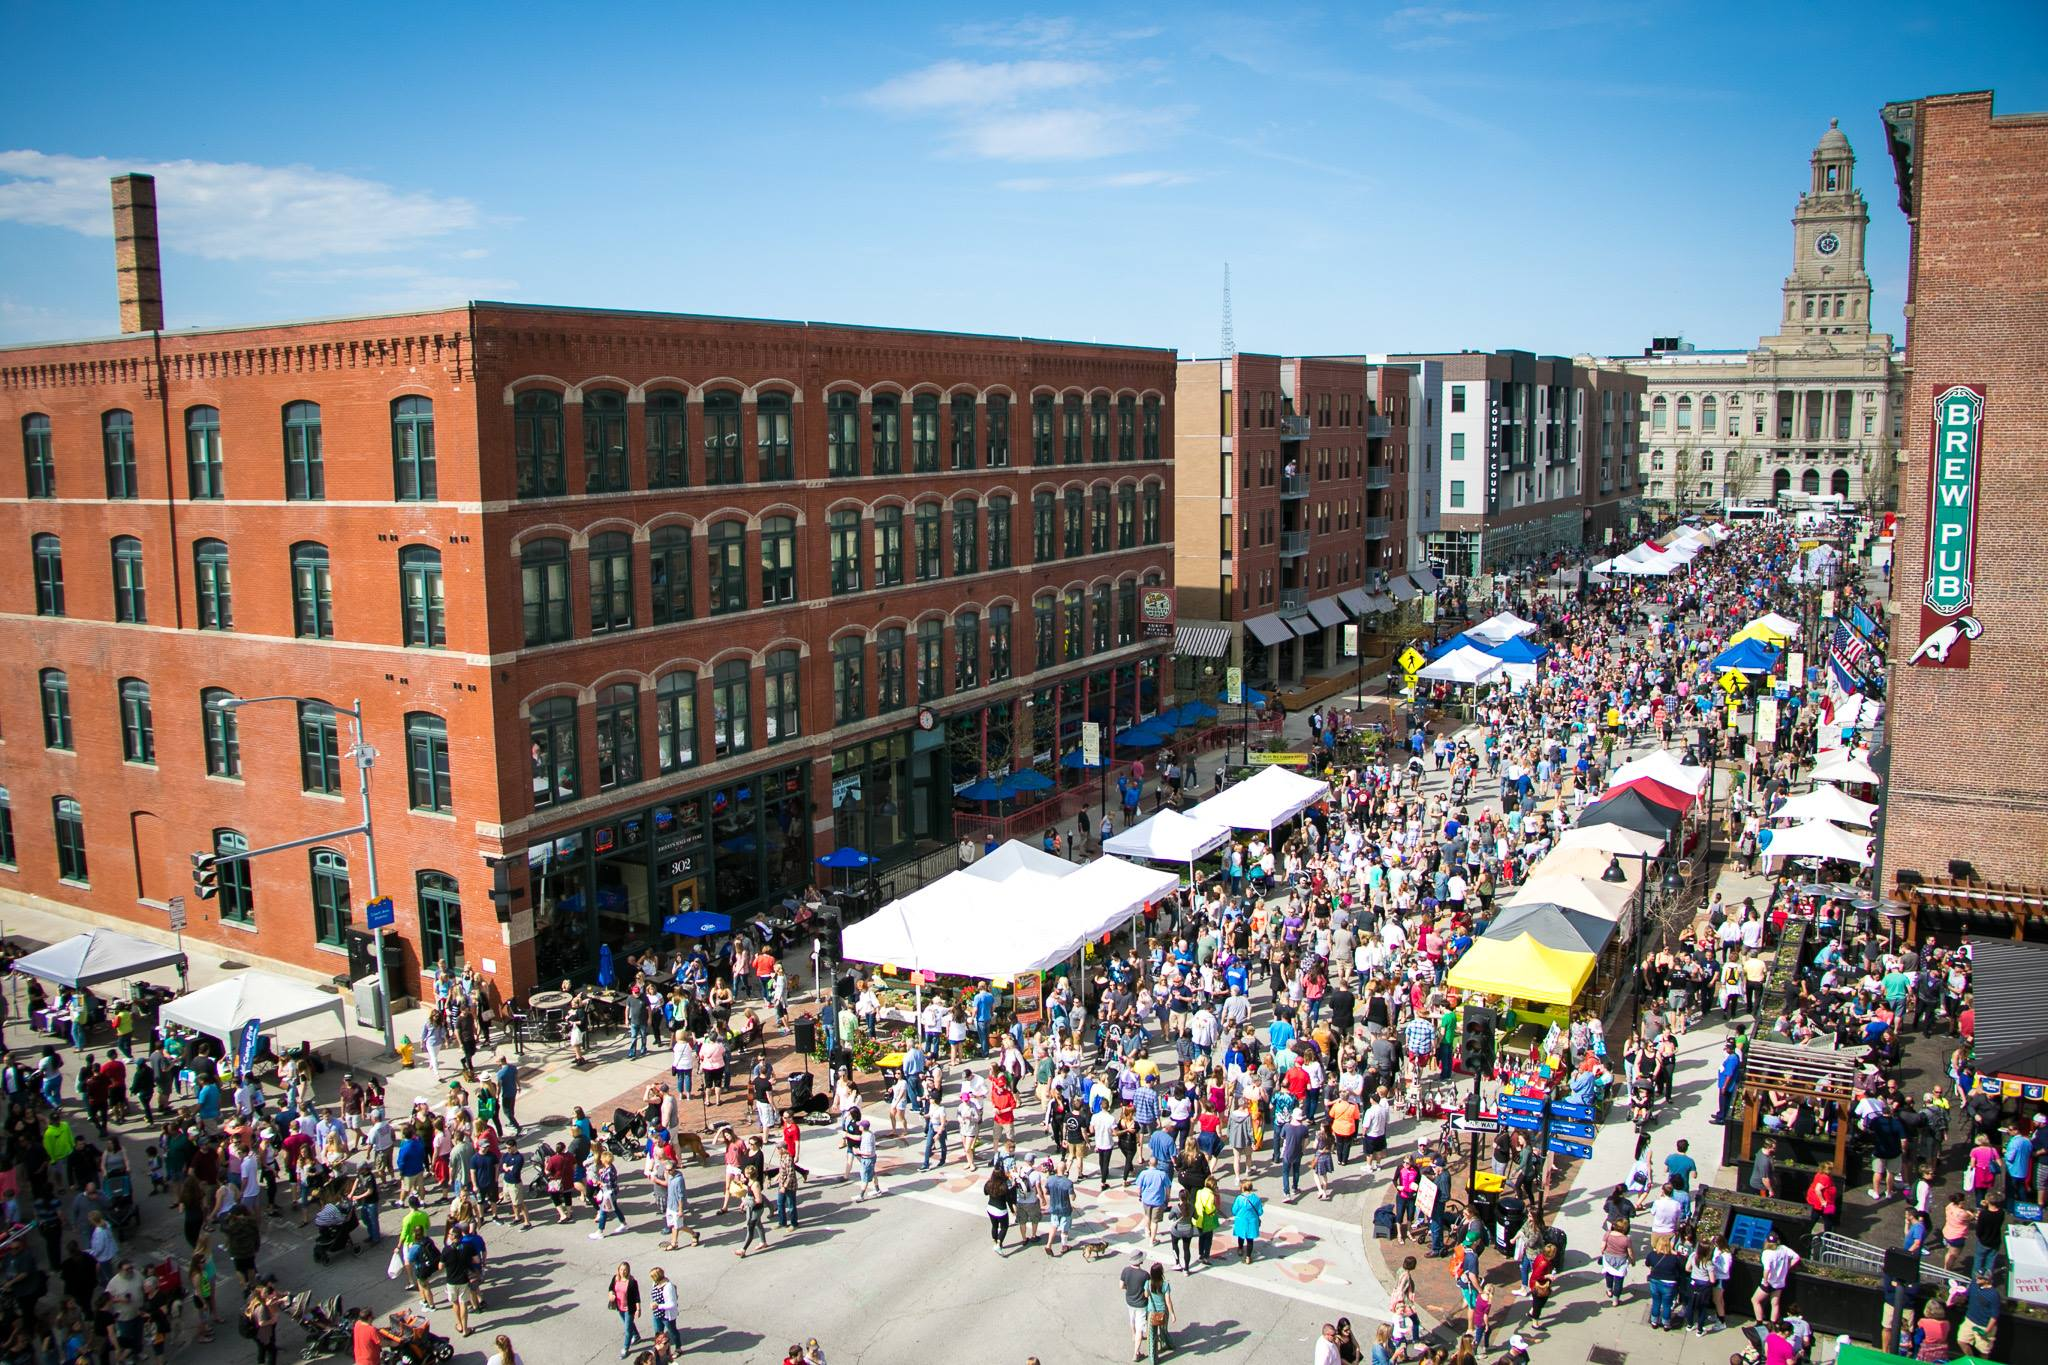 things to do in Iowa - Des Moines Farmers' Market